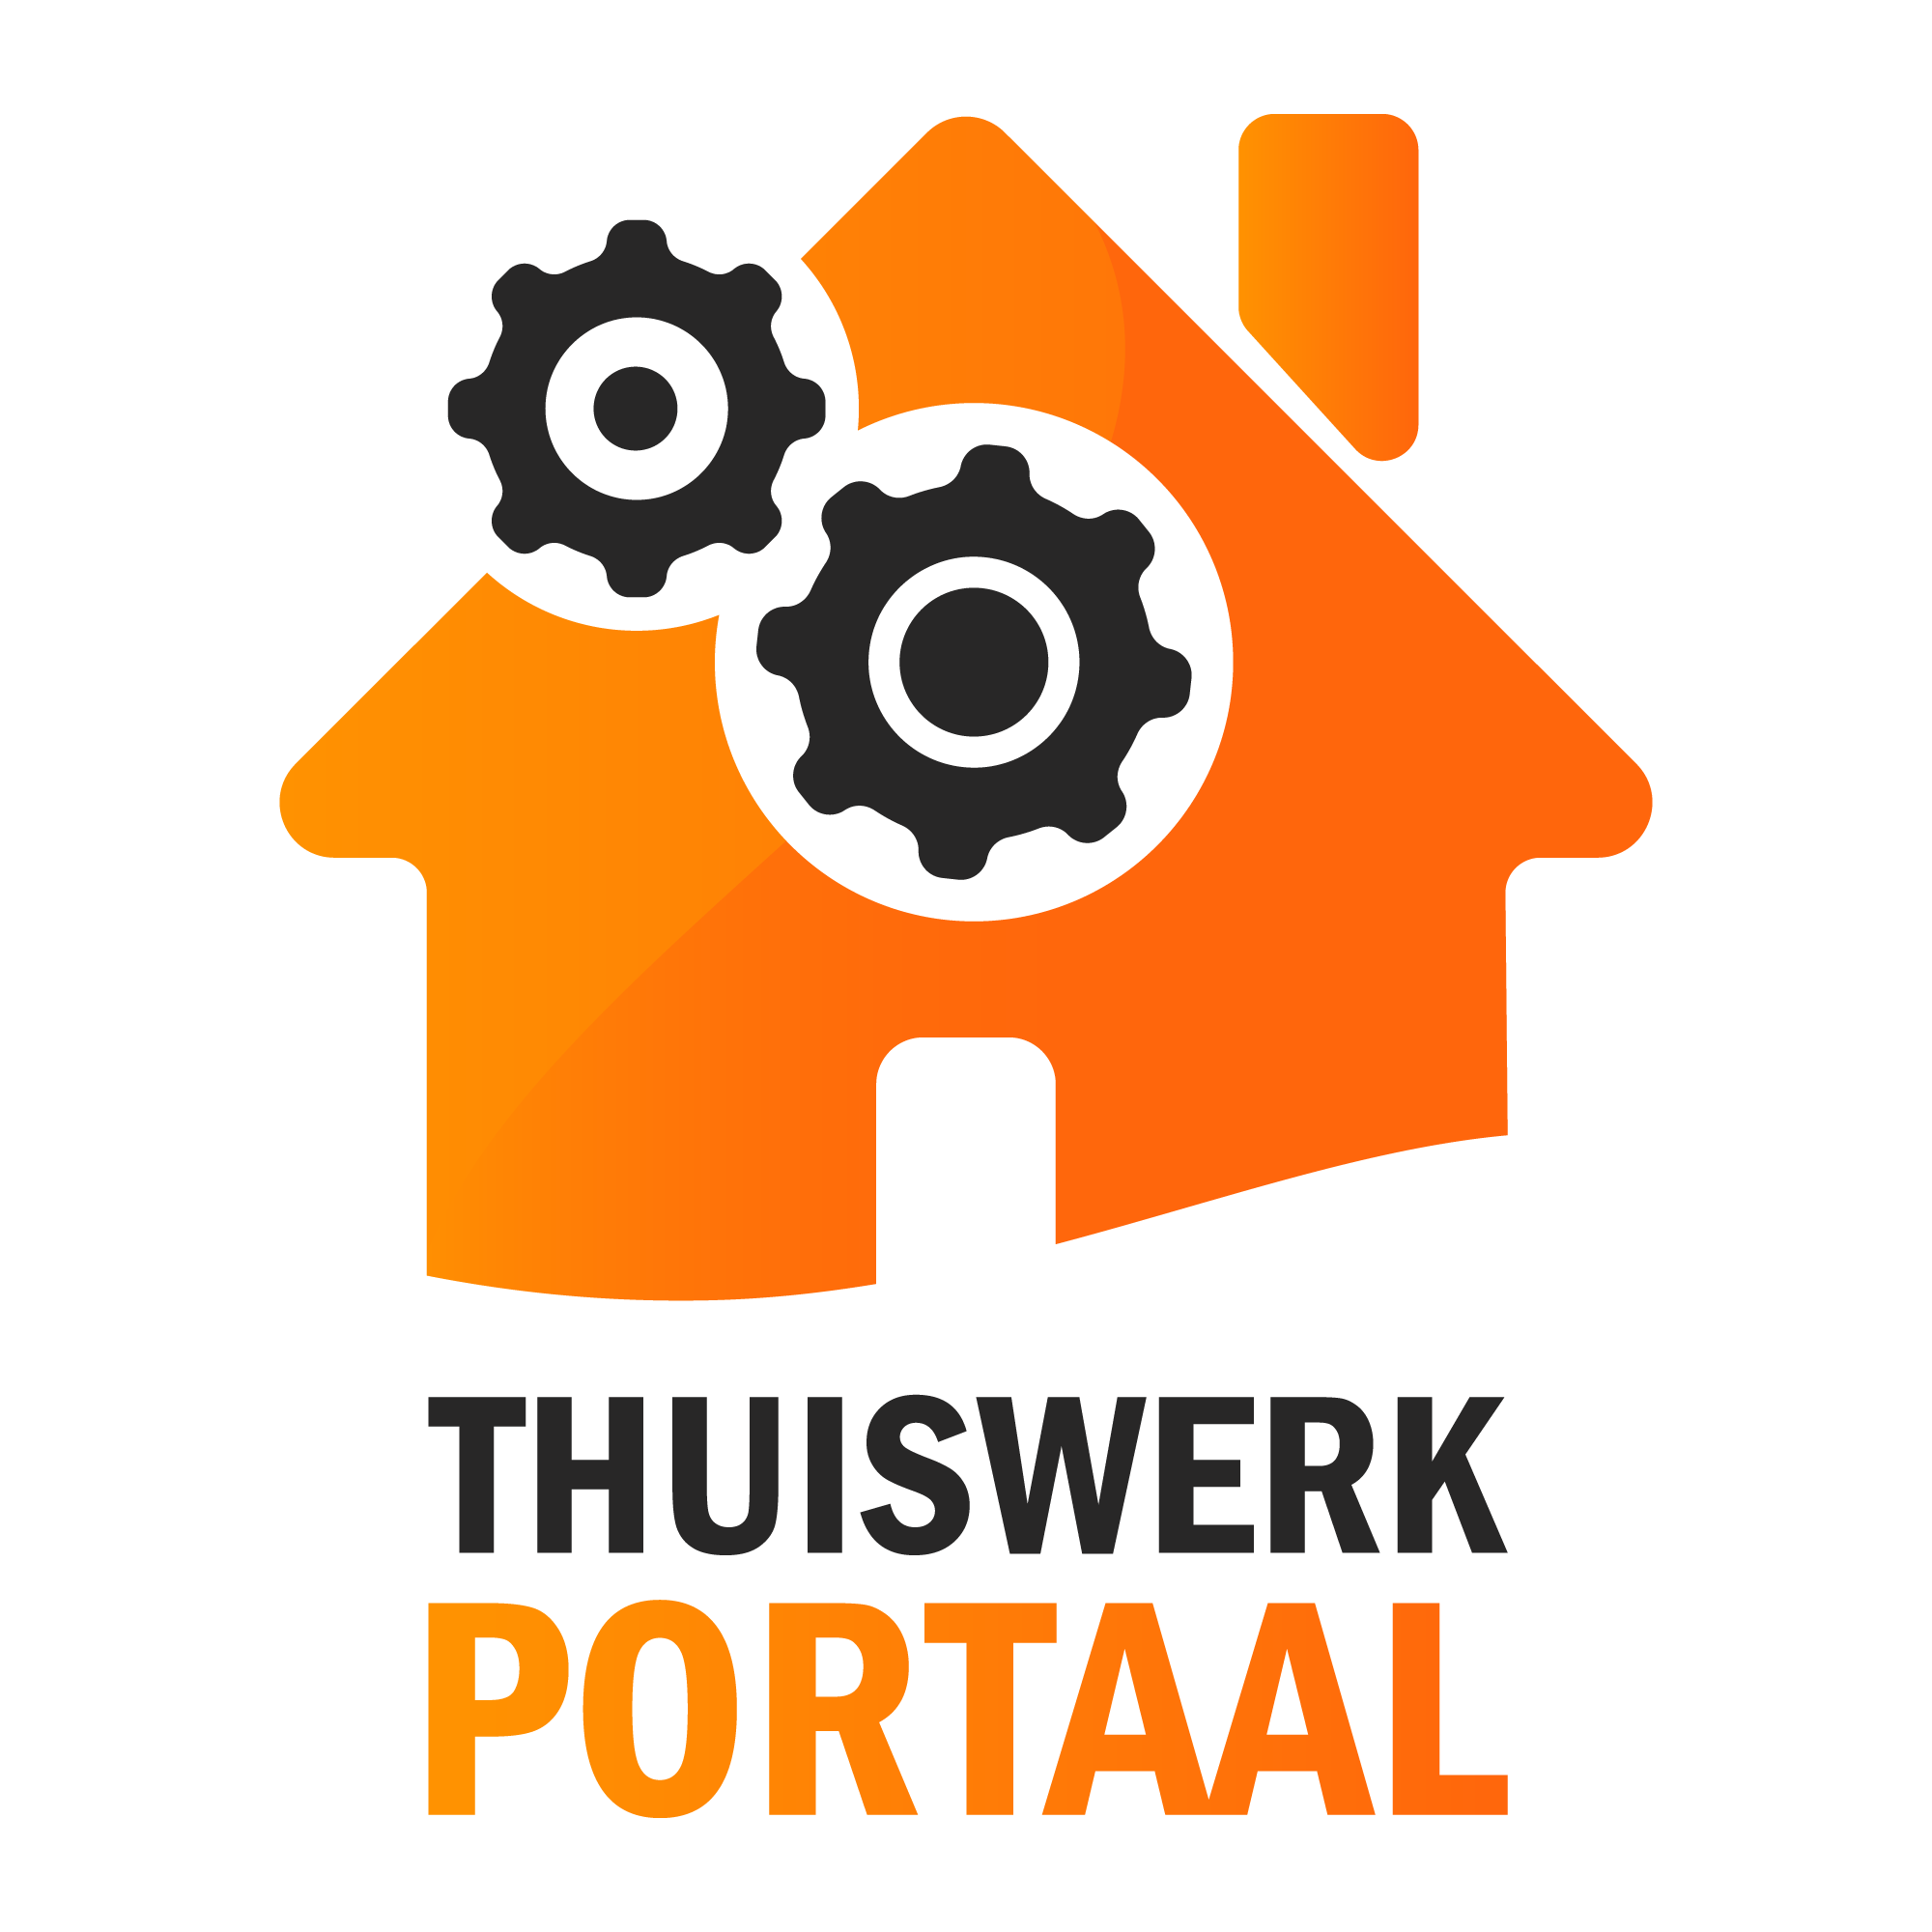 Thuiswerkportaal.nl